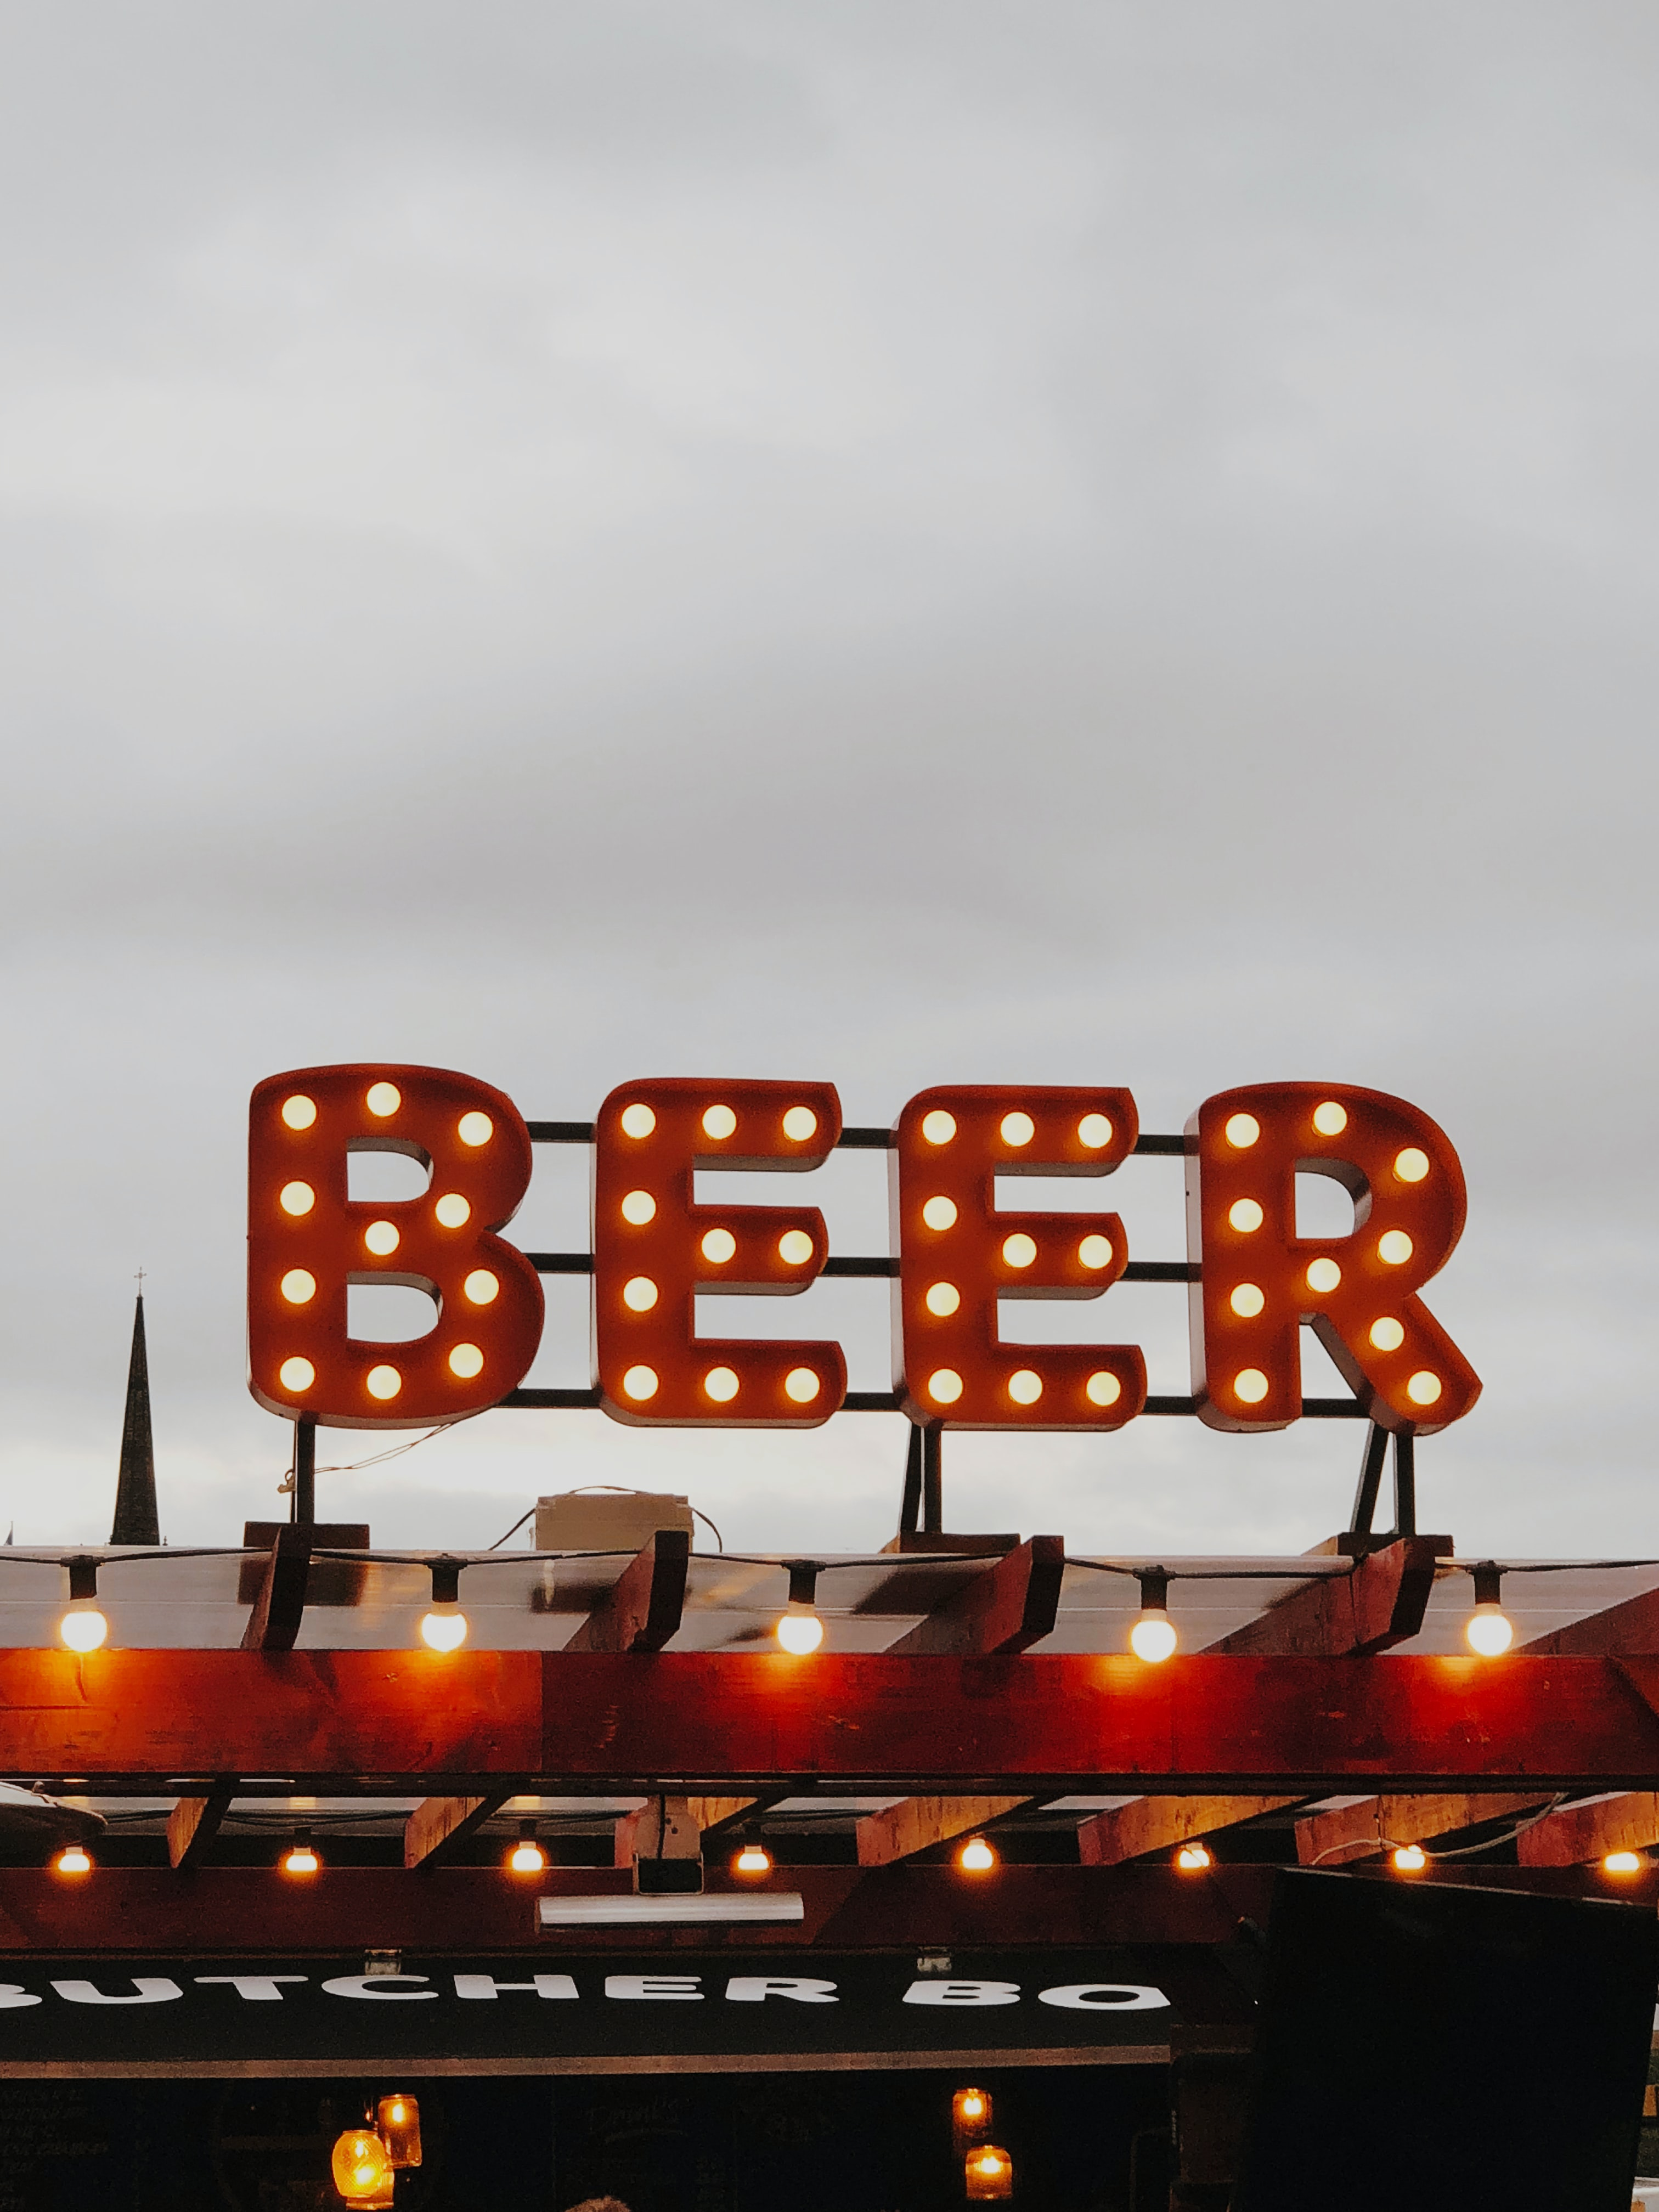 image of a beer billboard